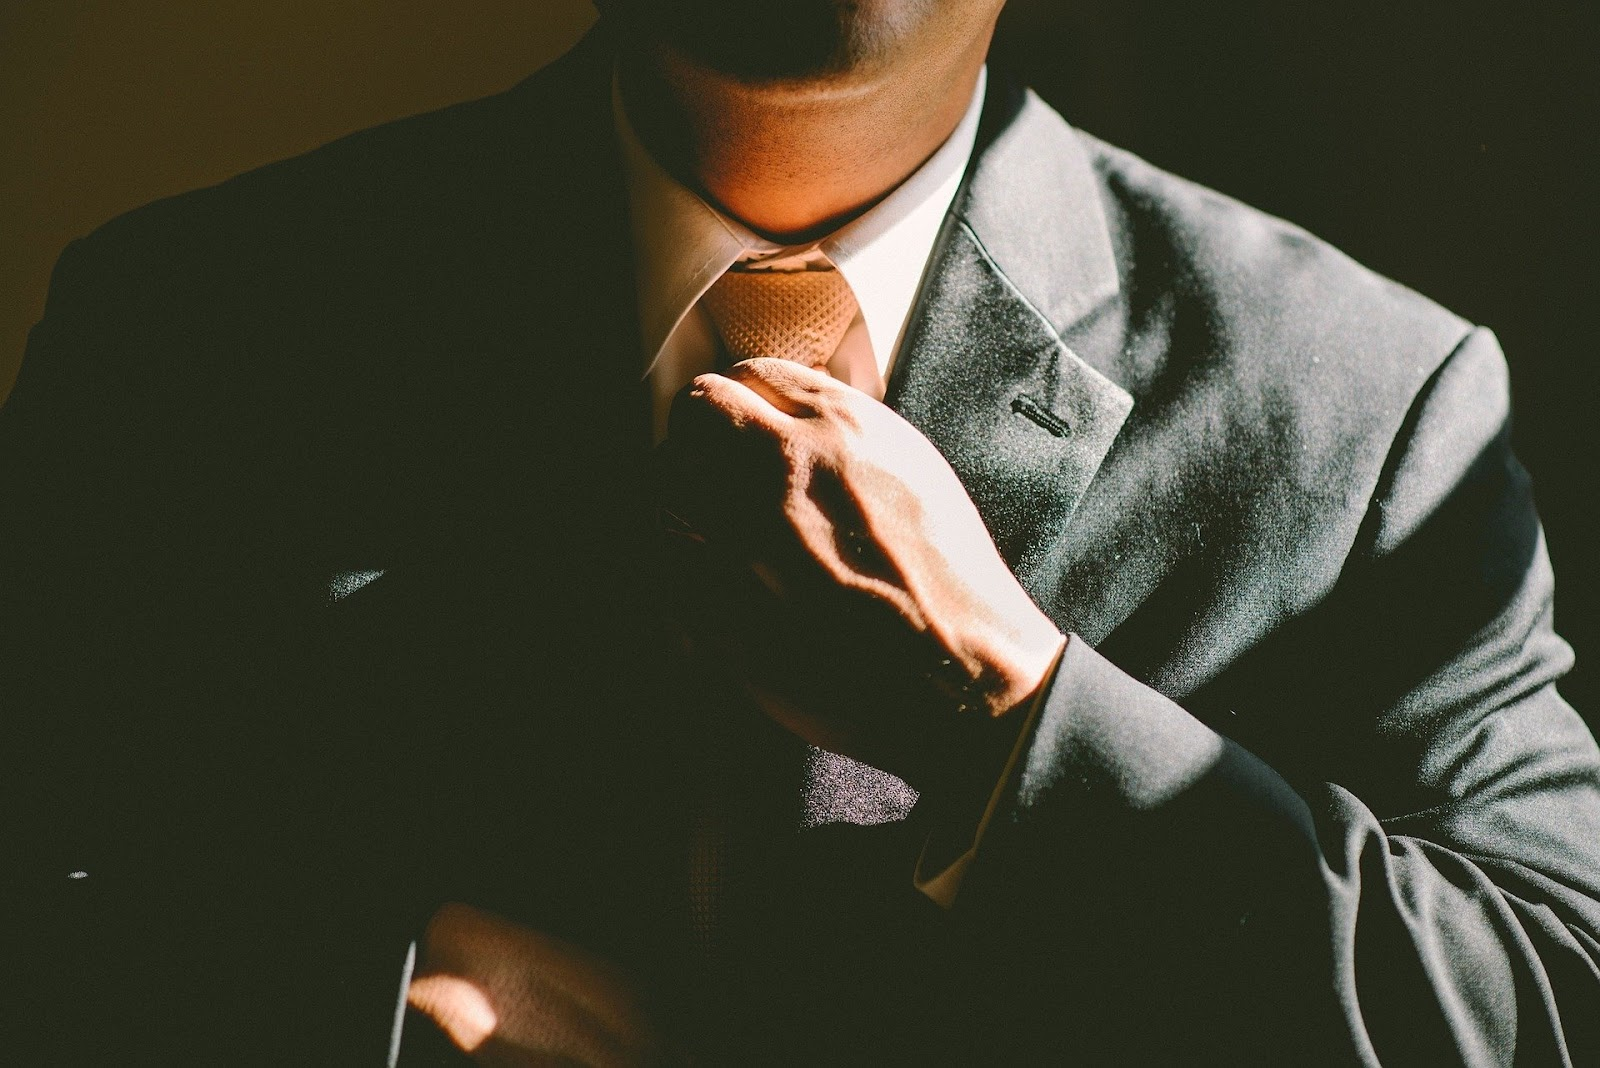 A man suiting up to promote a healthy and focussed home working routine